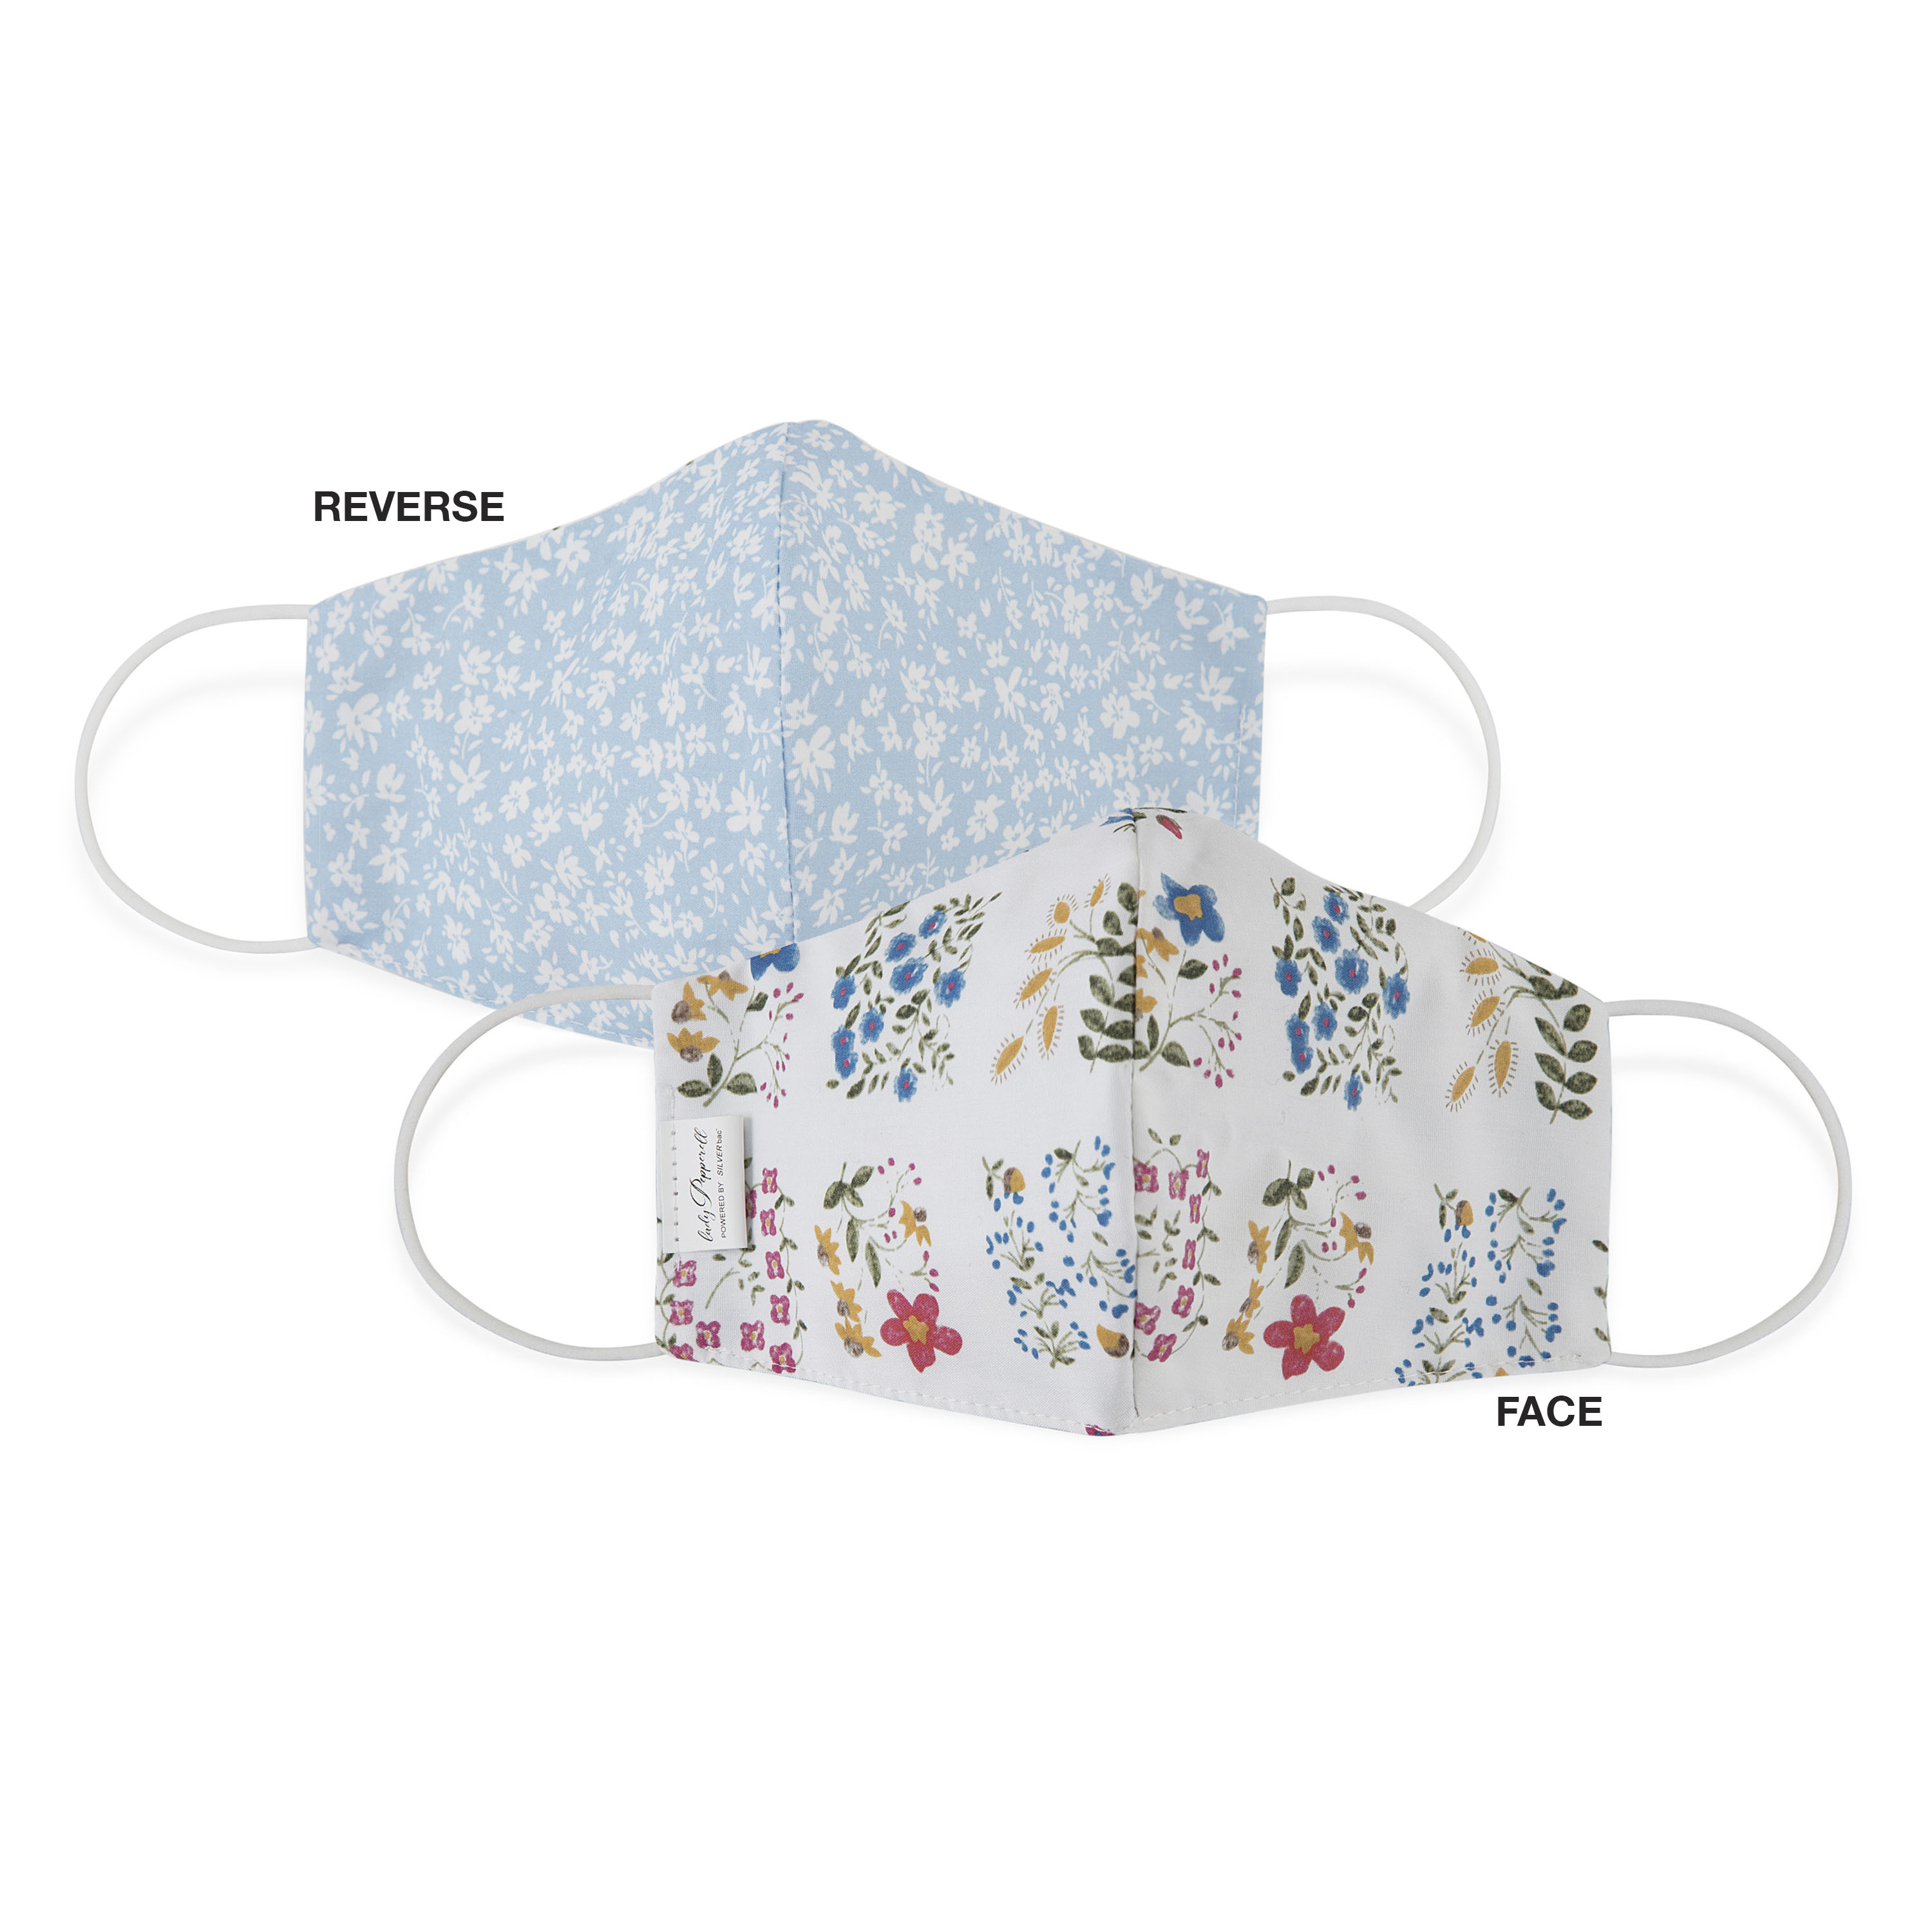 Lady Pepperell Lady Pepperell Reversible Floral Face Mask Oversized Ines Eloise Single Walmart Com Walmart Com